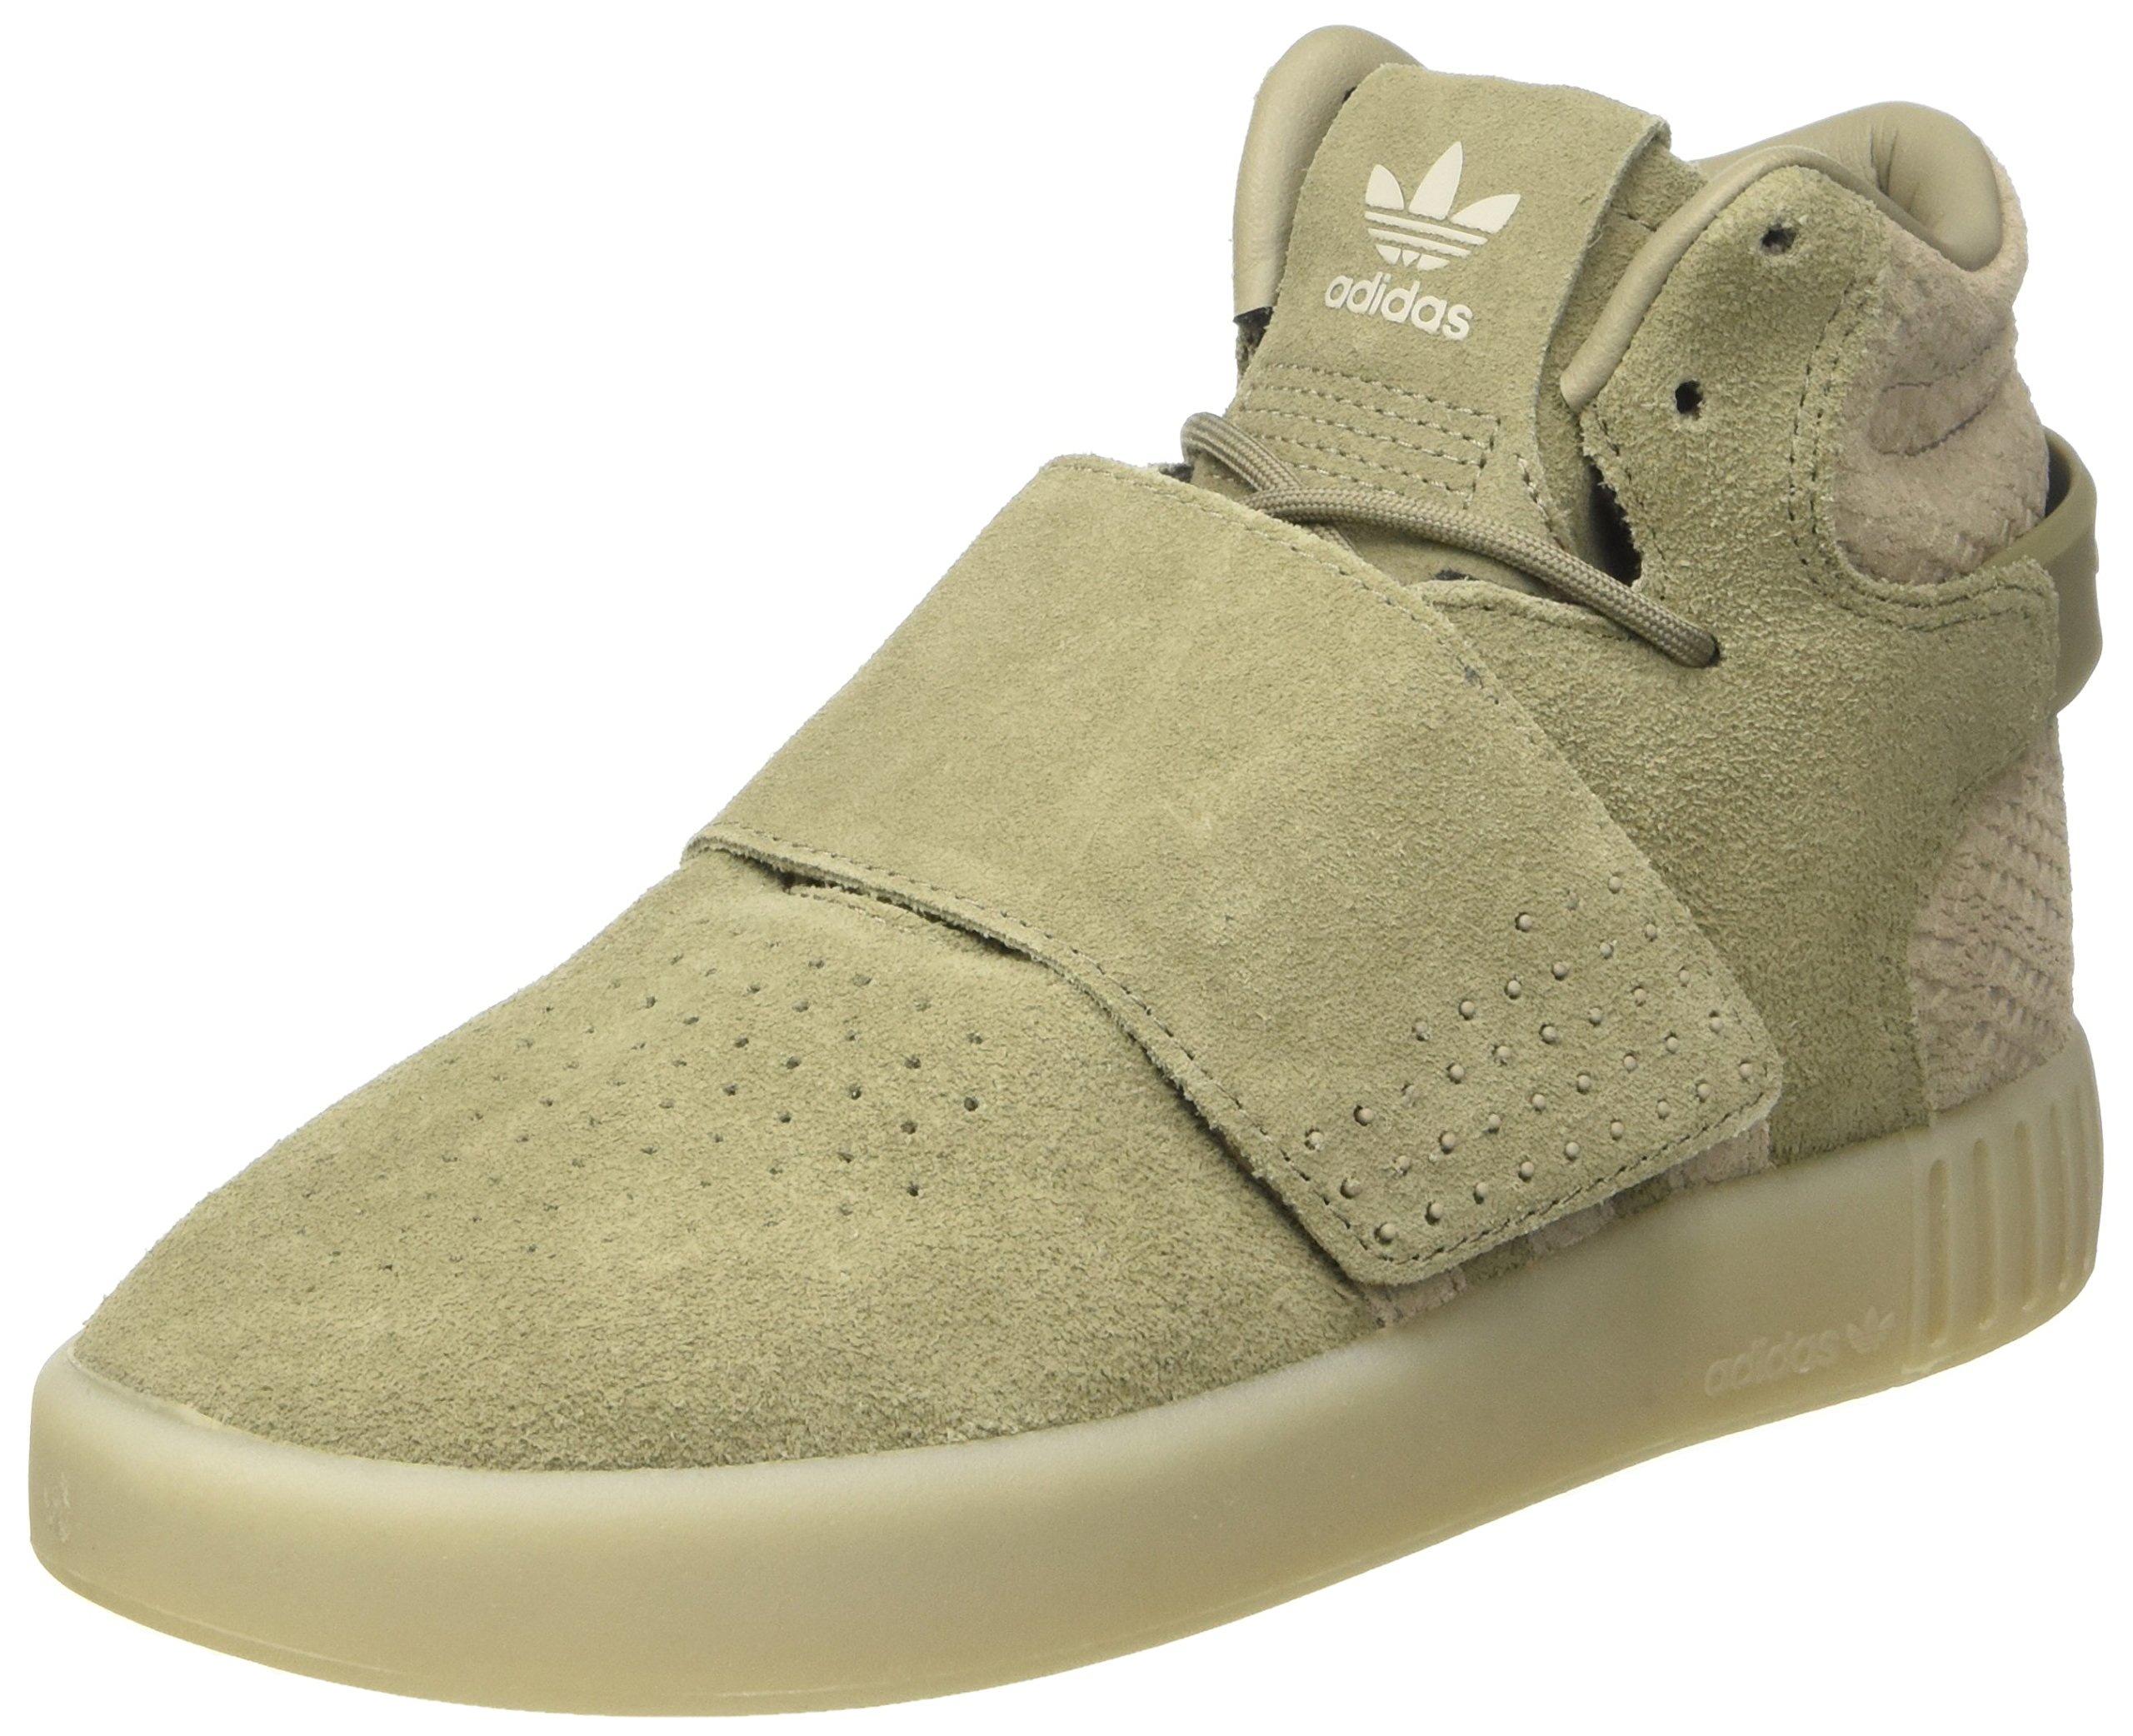 new style 6a79a 5d322 Galleon - Adidas Originals Mens Tubular Invader Strap Trainers - Cargo - 7